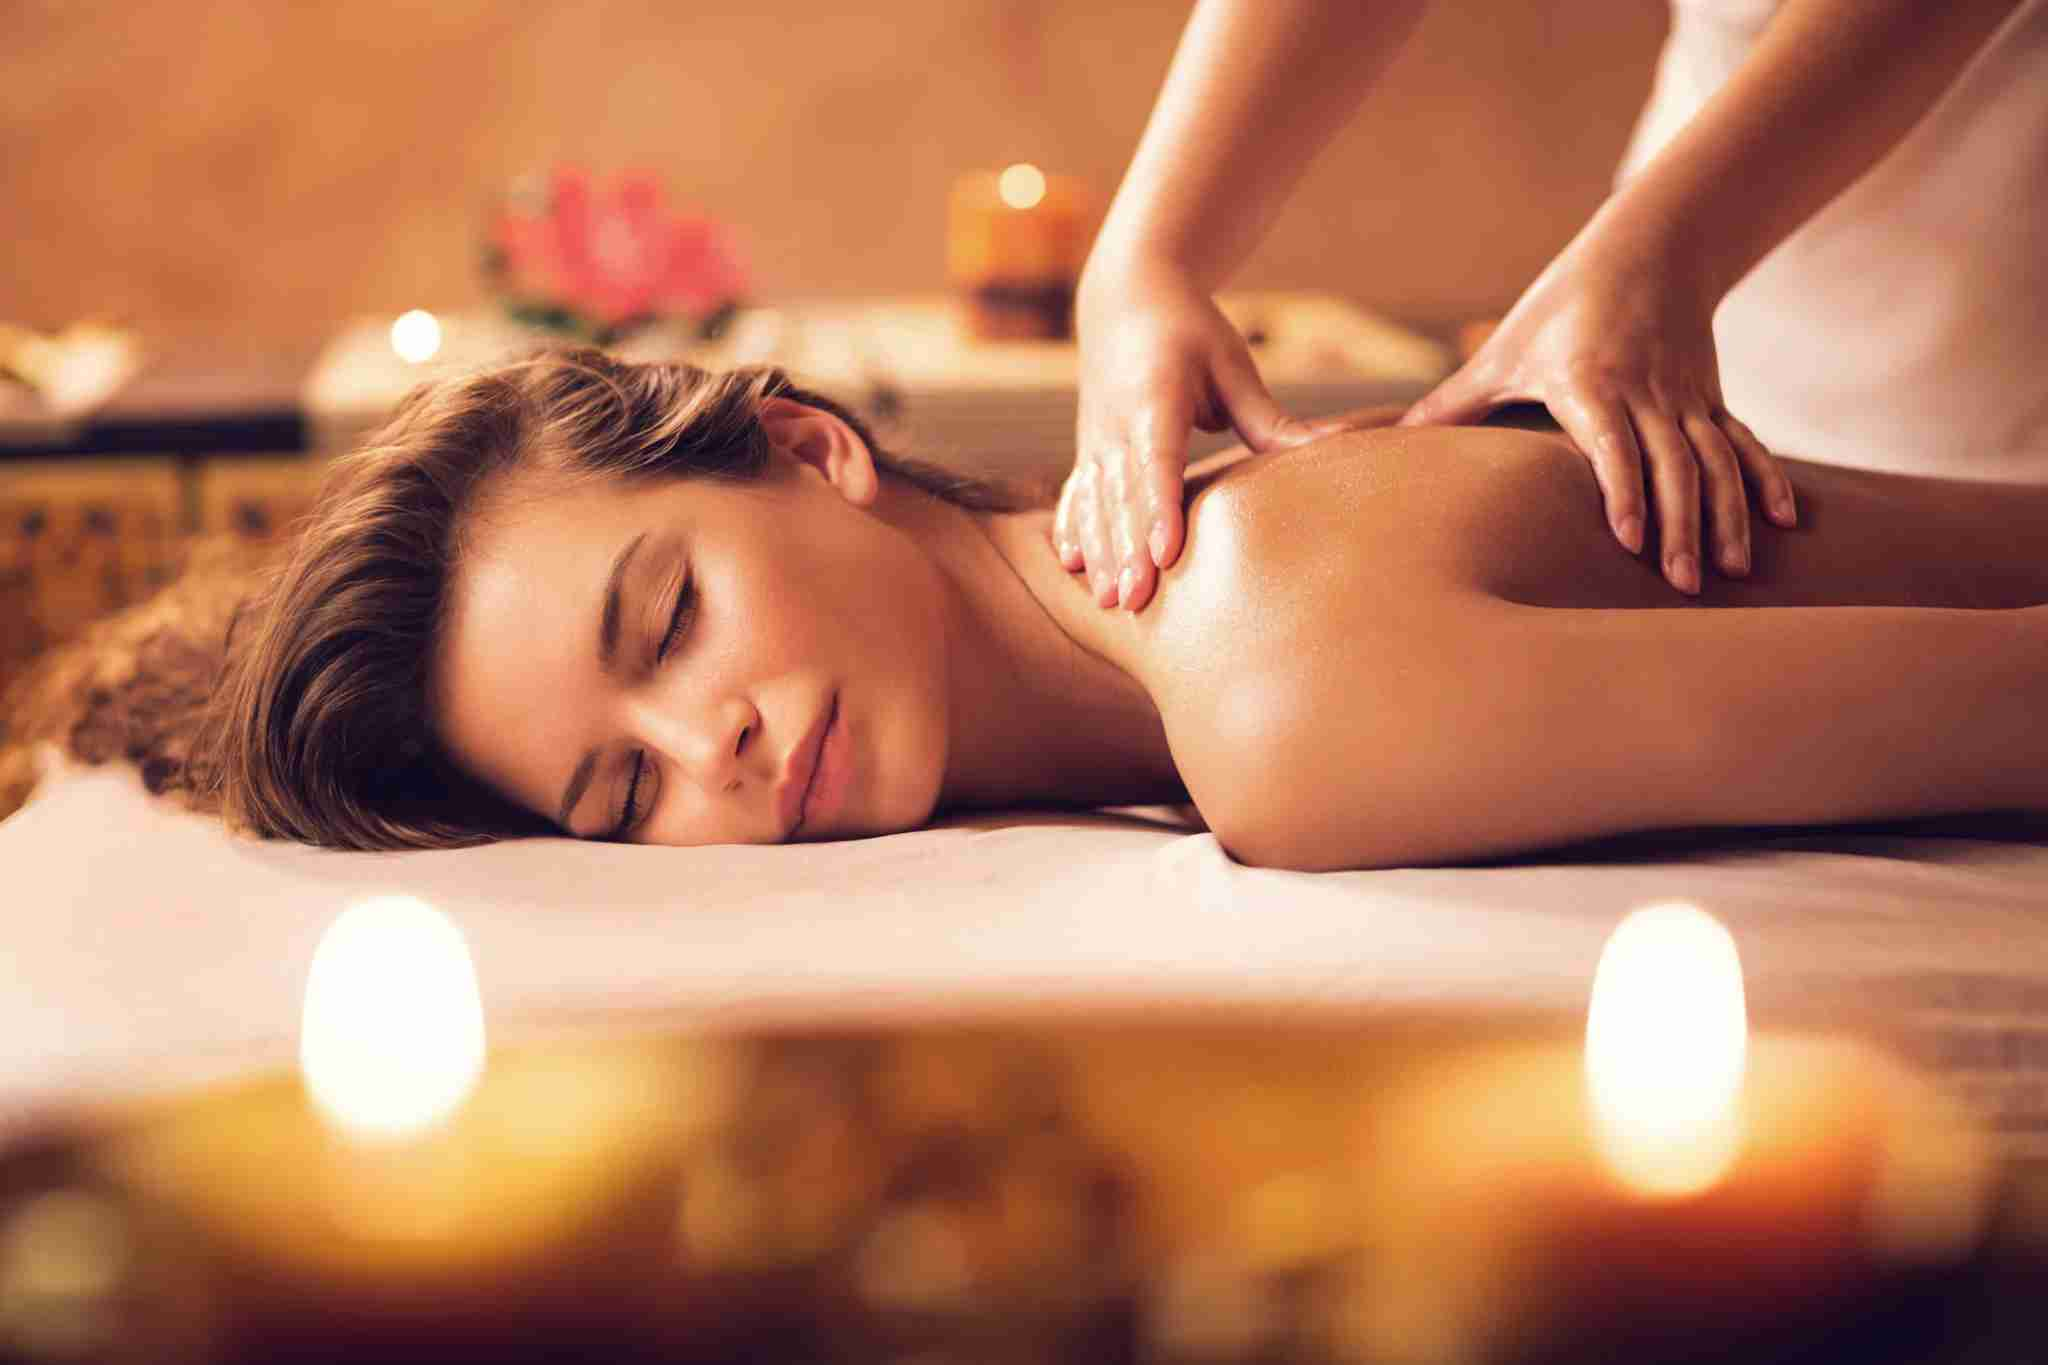 Book a massage on your next trip. (Photo by BraunS/Getty Images)